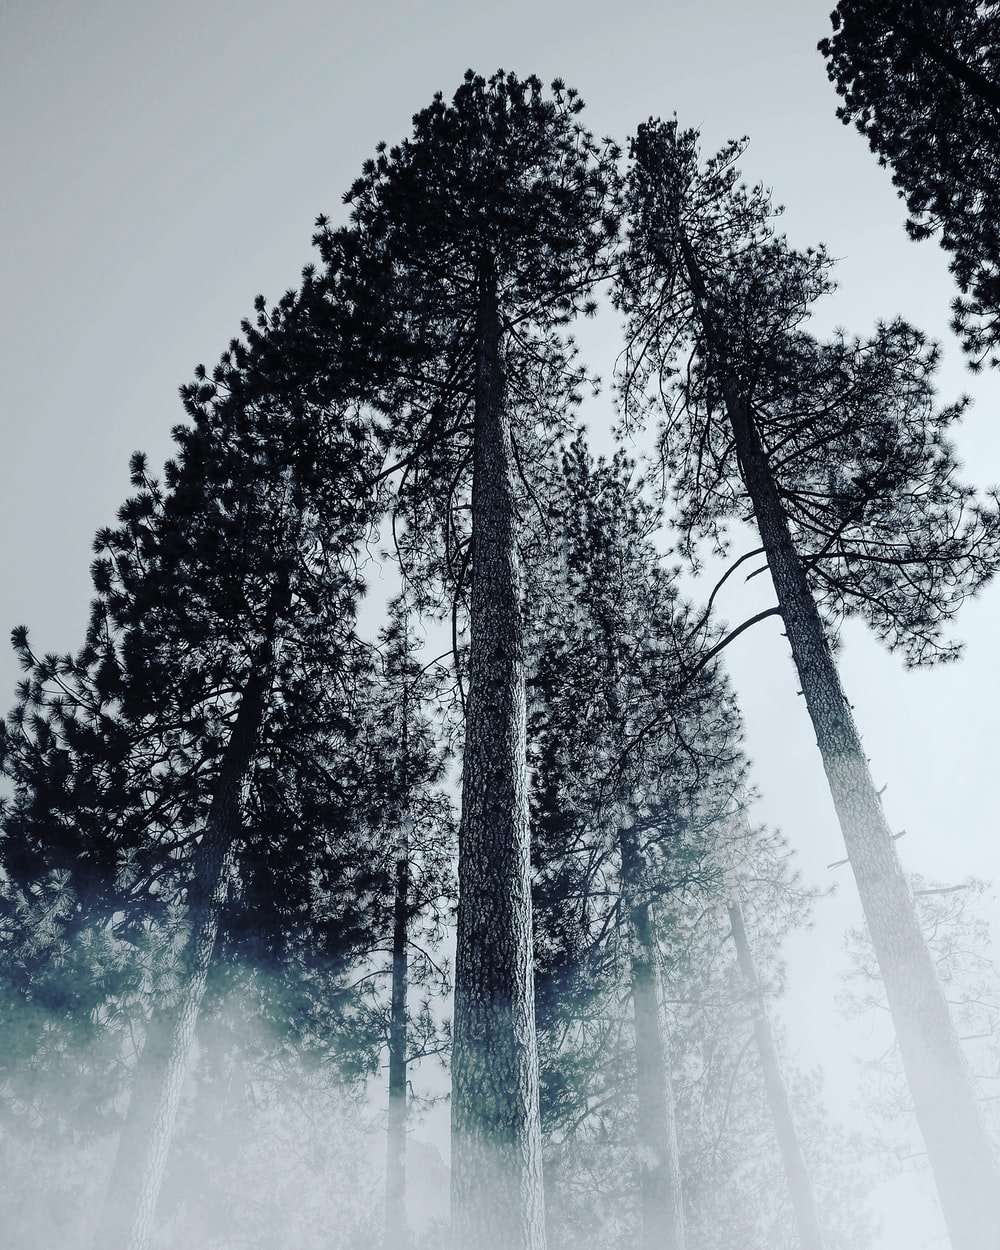 low-angled photography of trees